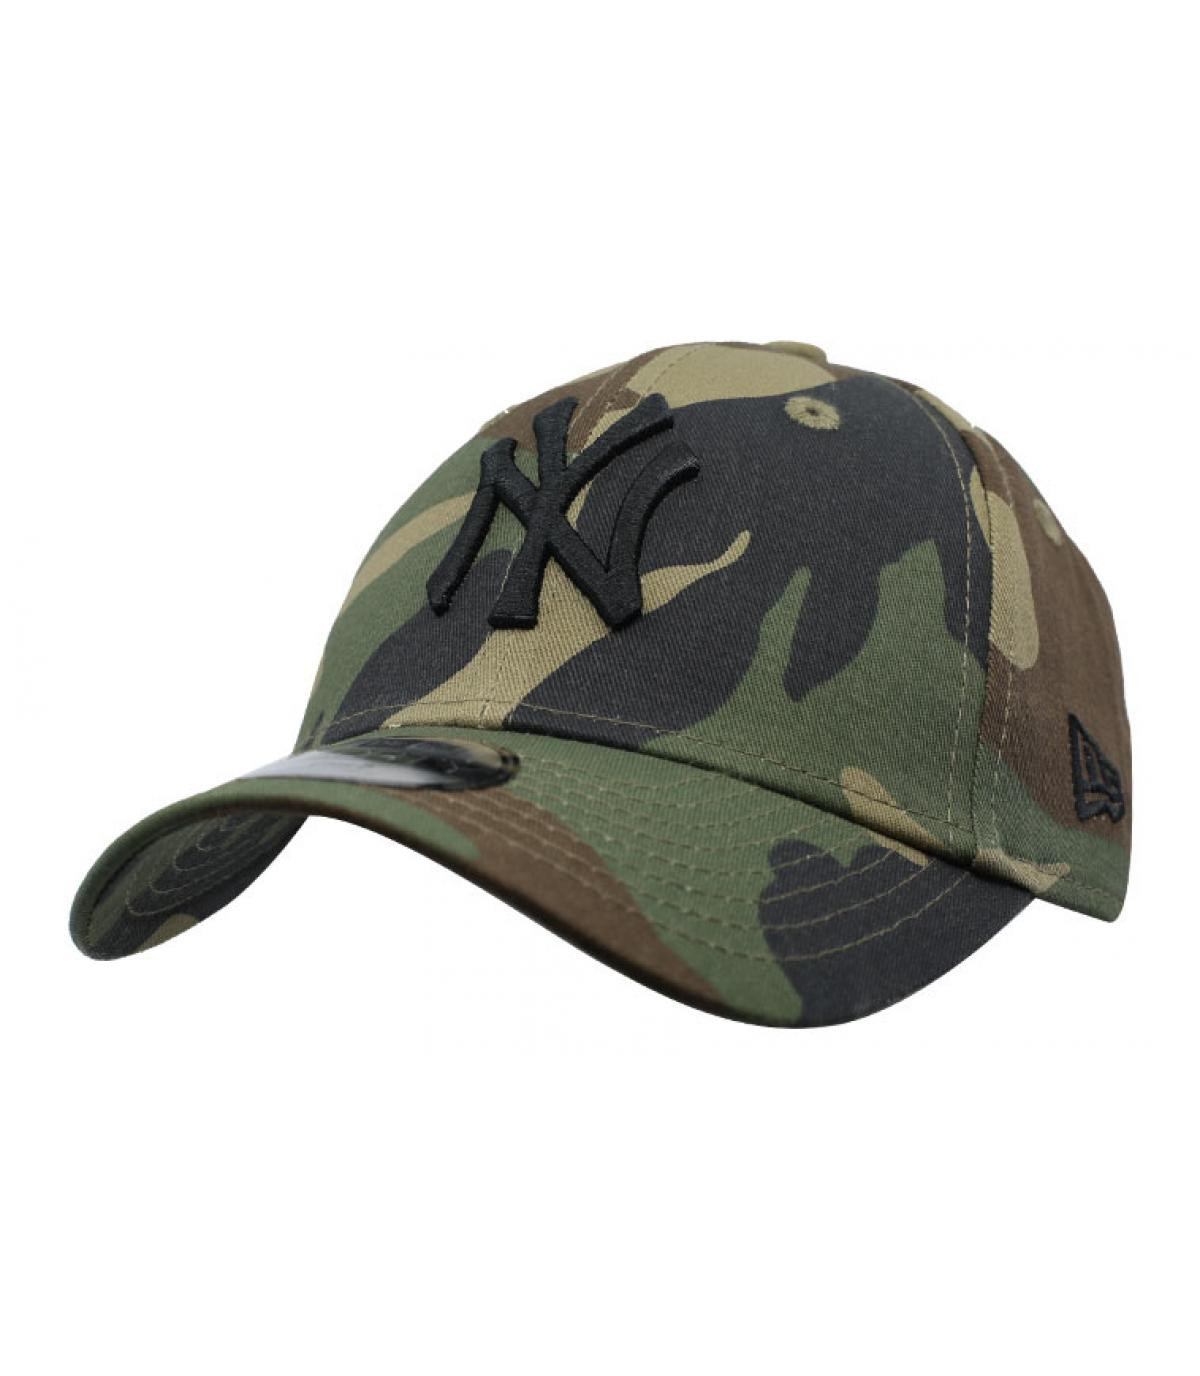 Details Kids League Ess NY 9Forty Camo woodland - afbeeling 2